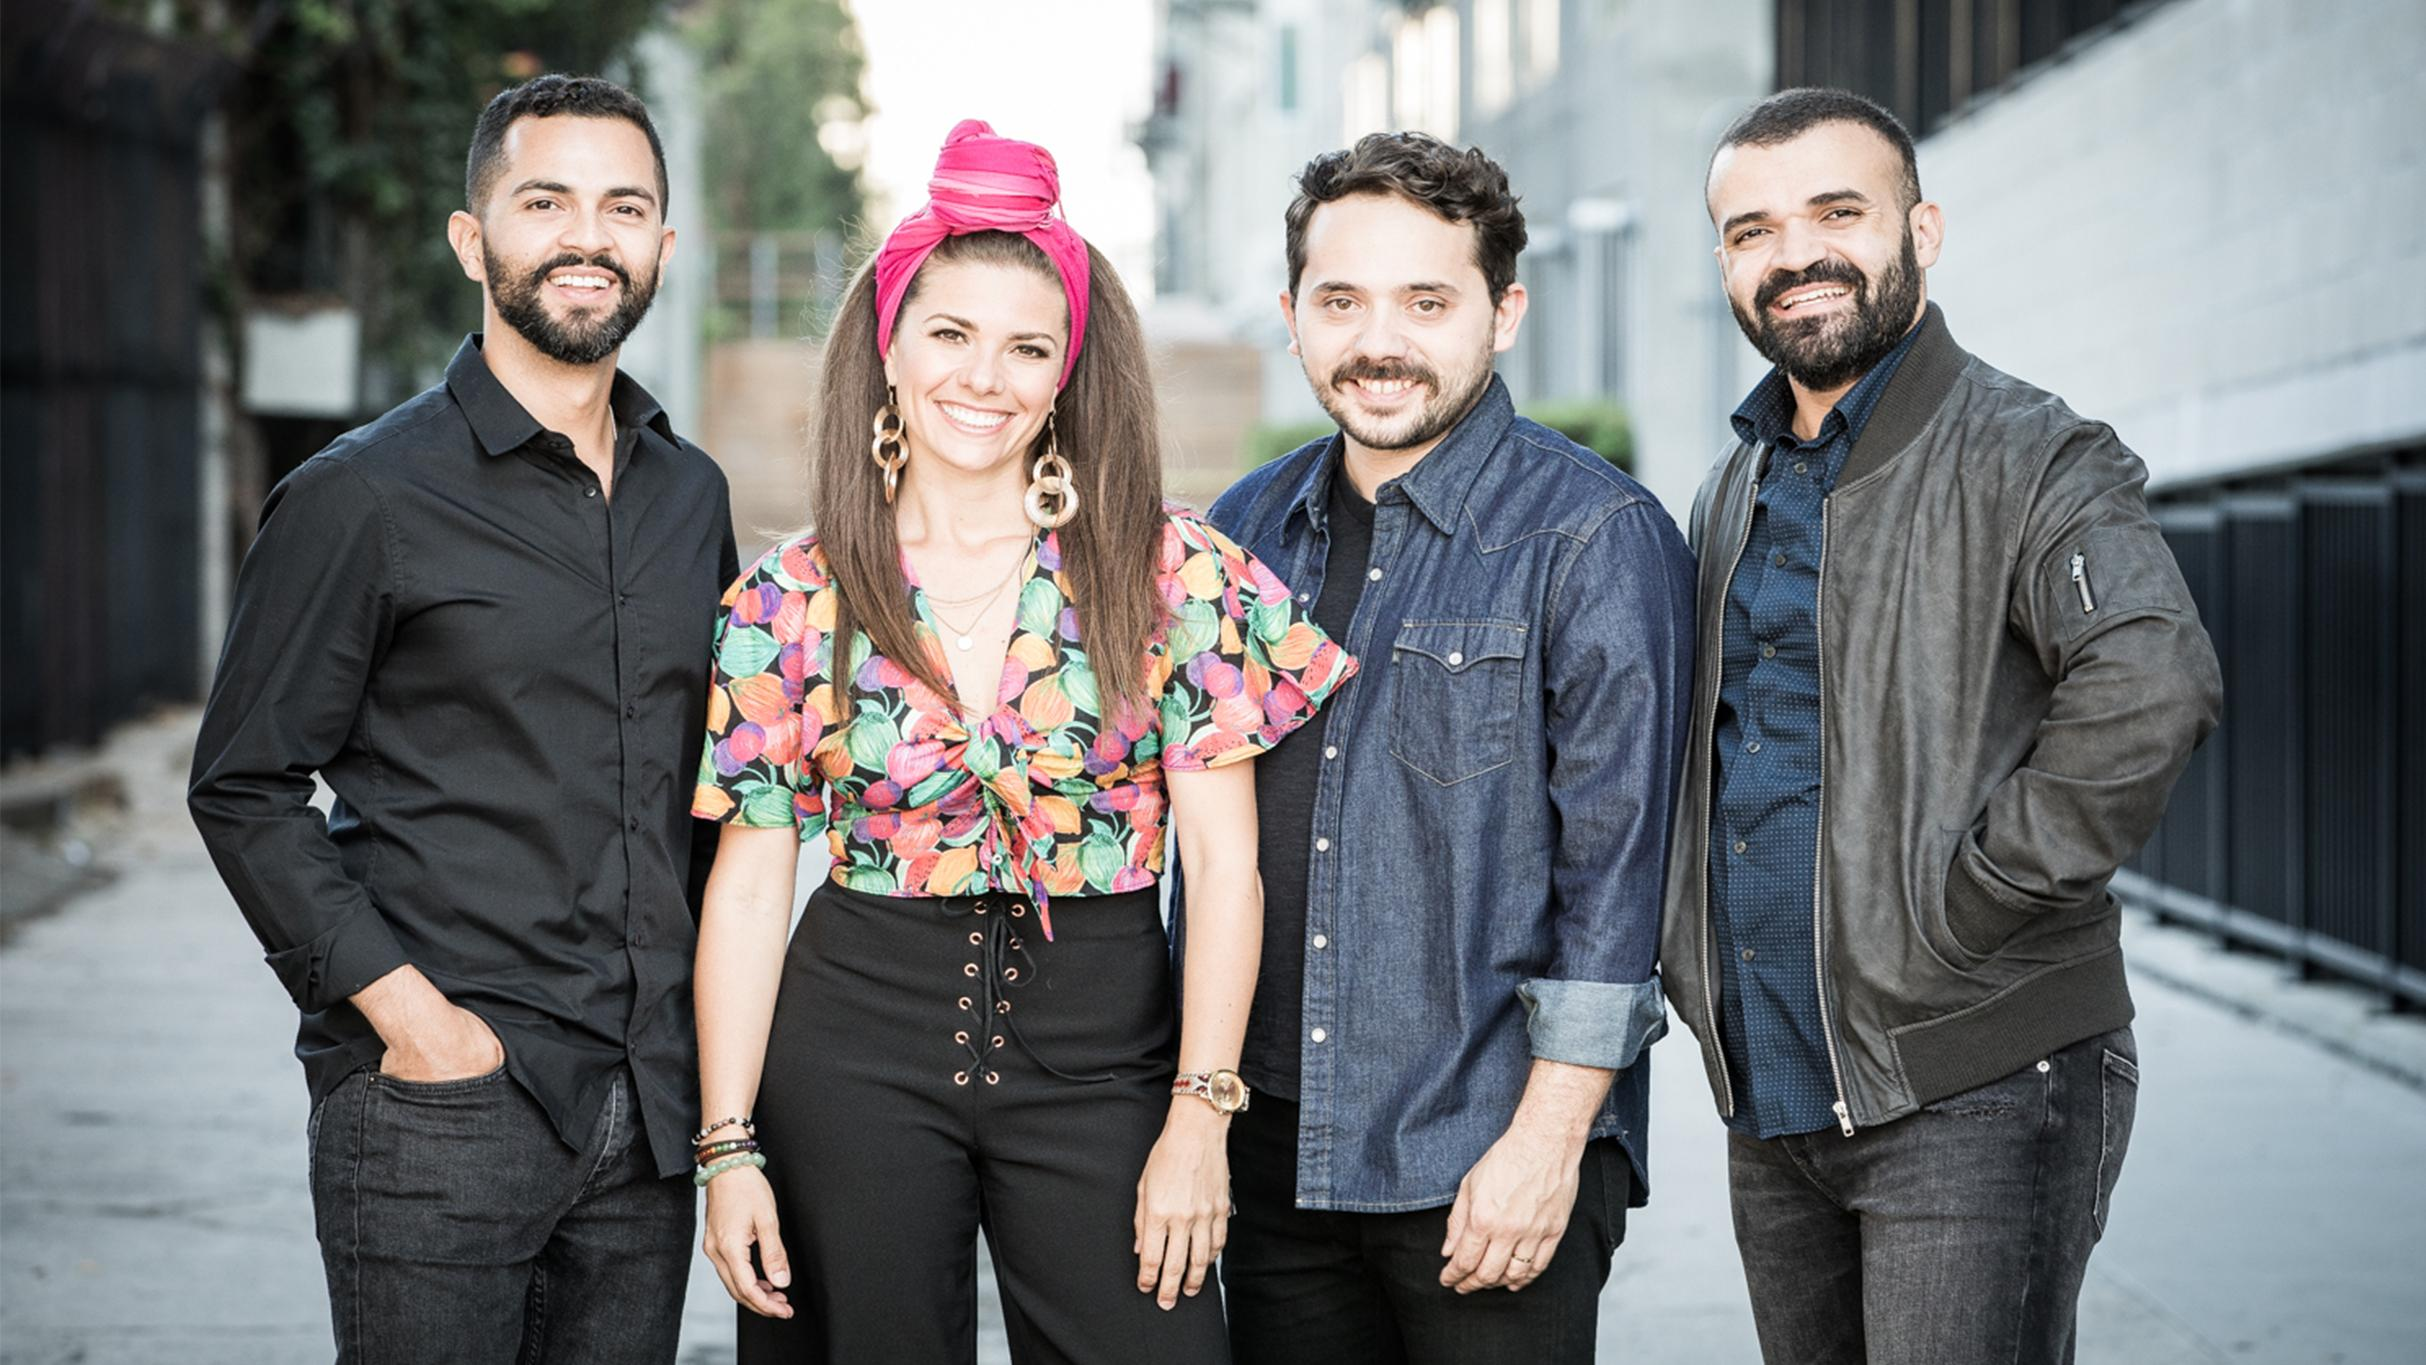 Caro and band posed for photo.